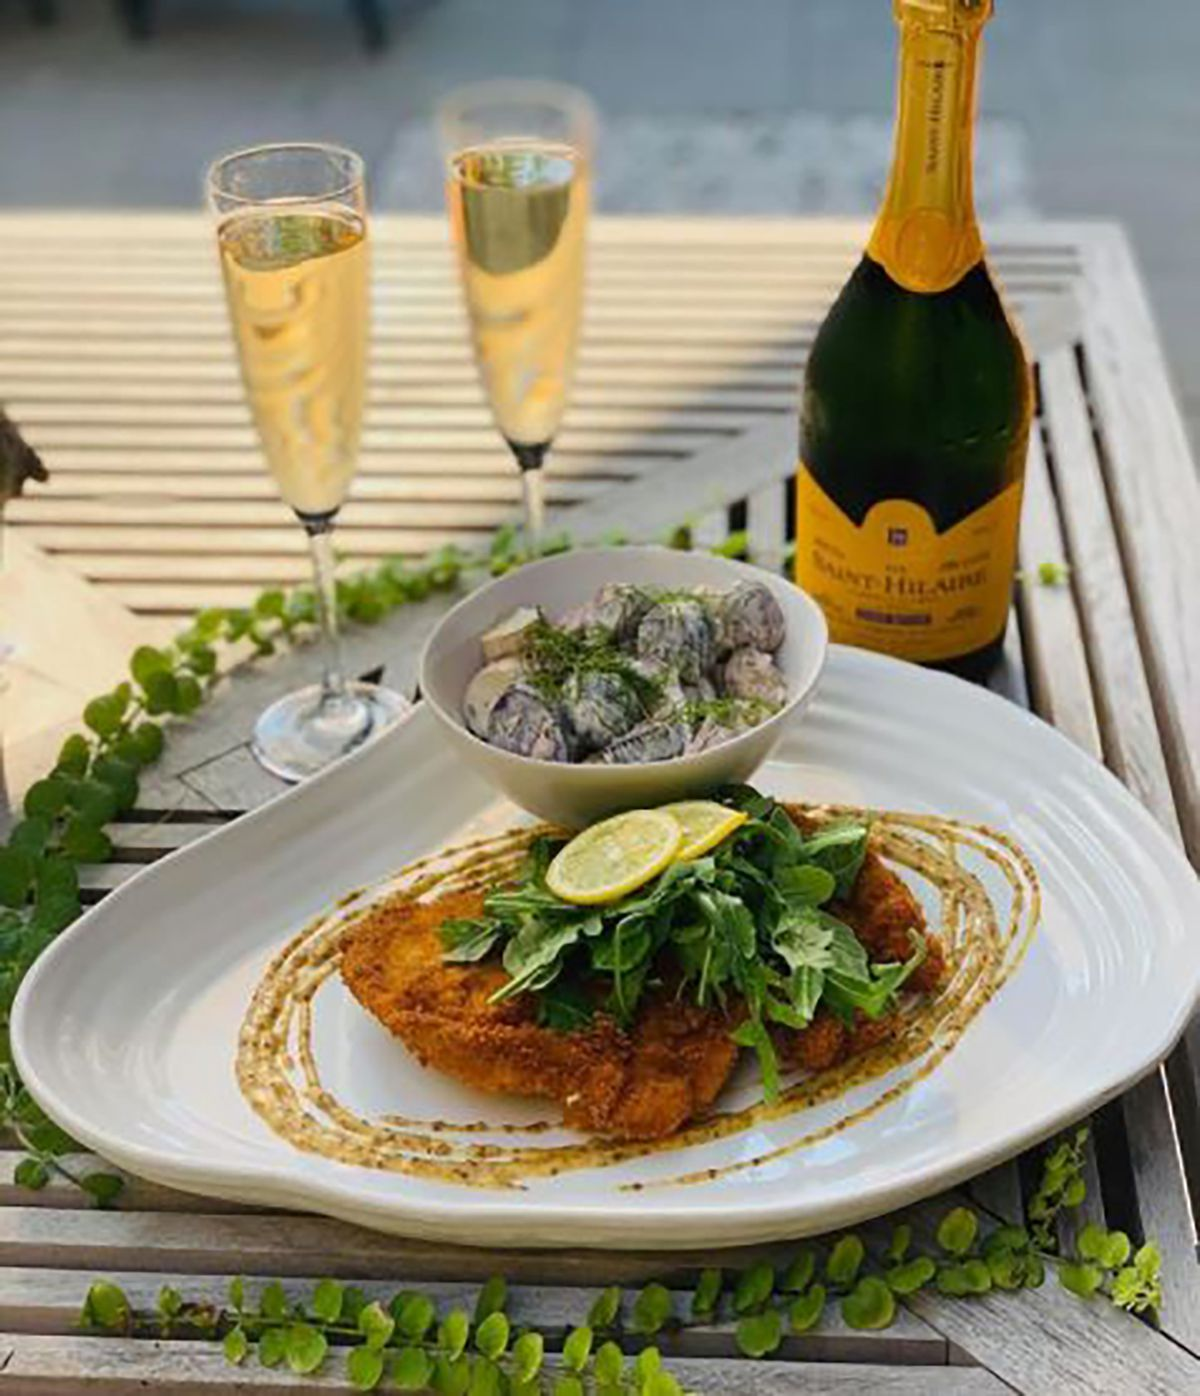 A table setting with champagne and schnitzel